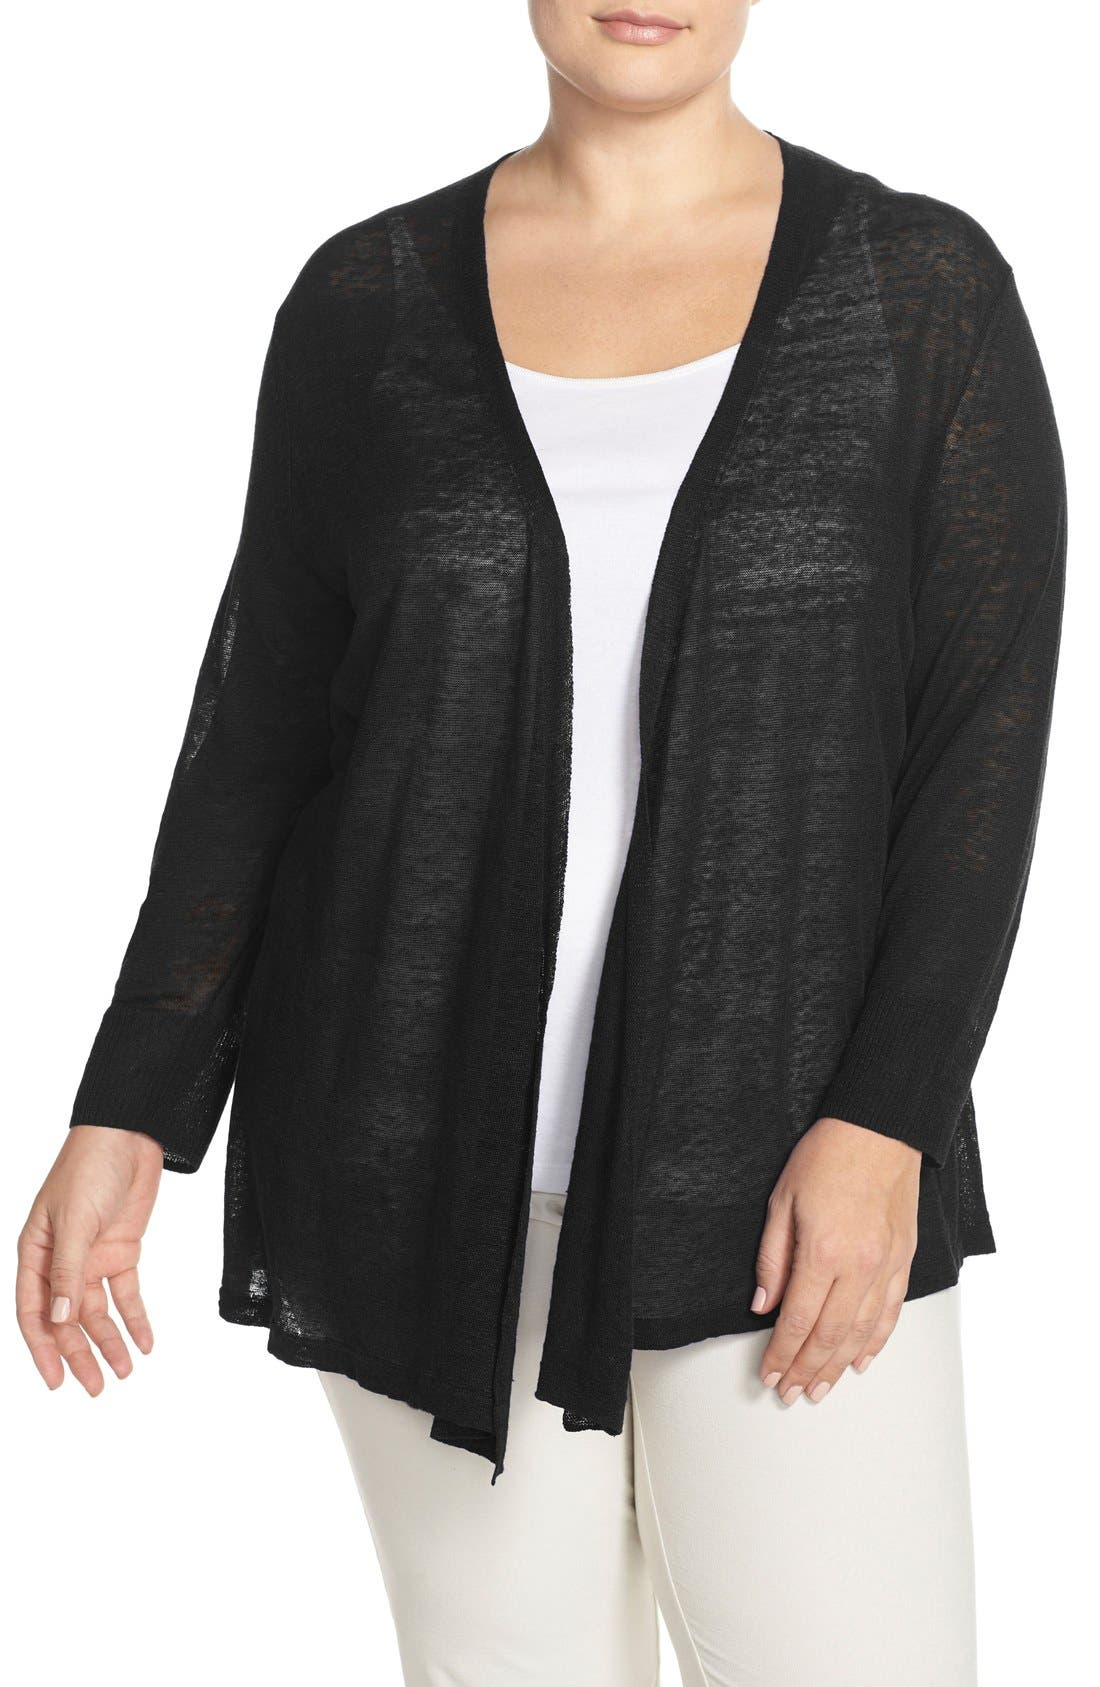 '4-Way' Three Quarter Sleeve Convertible Cardigan,                         Main,                         color, Black Onyx